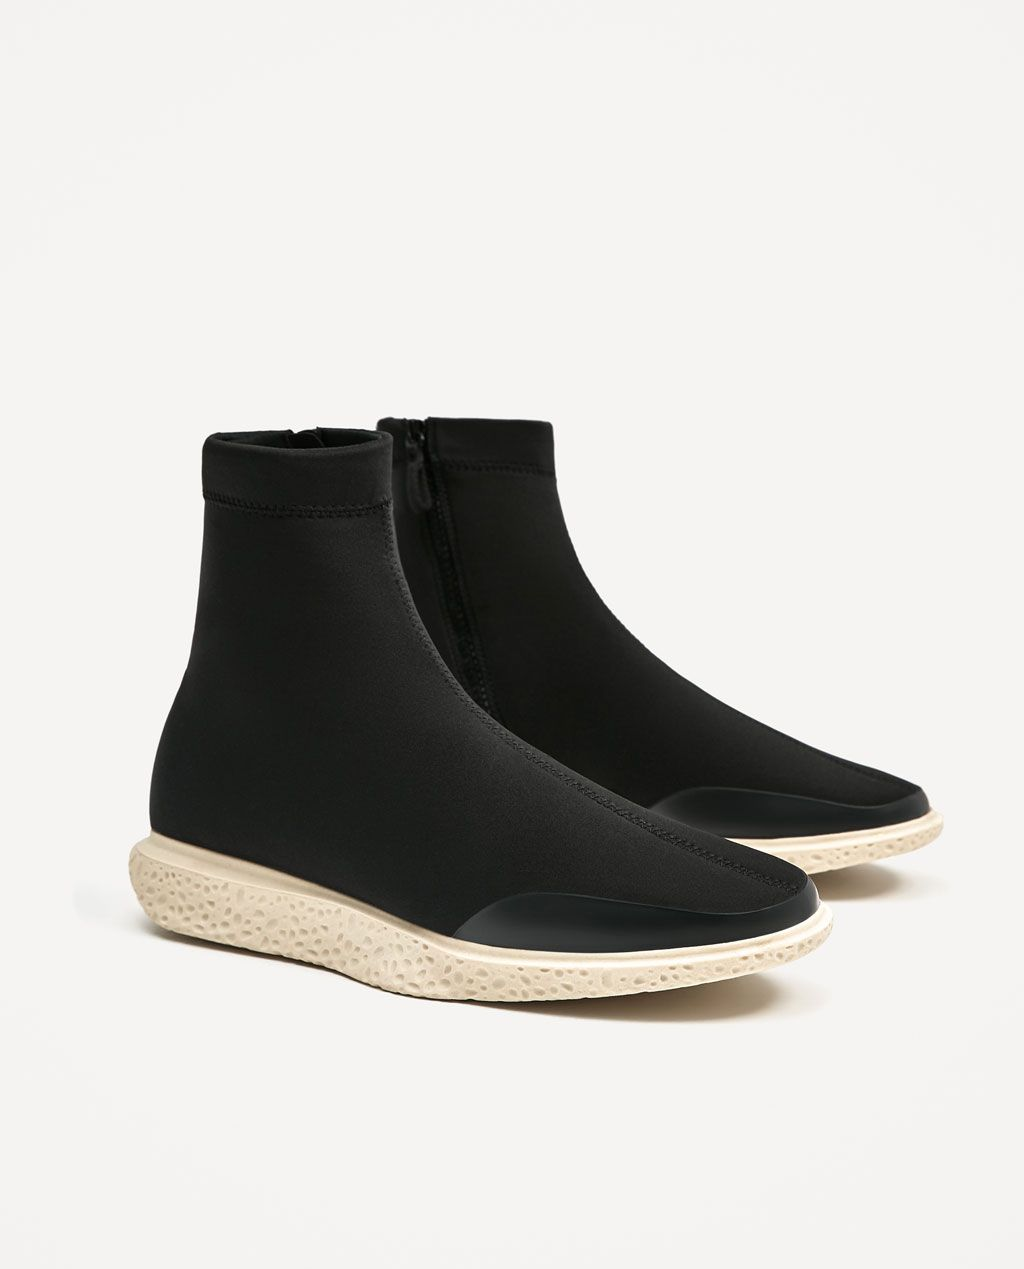 best service a28a3 b9f5d Image 2 of HIGH TOP BLACK SOCK SNEAKERS from Zara